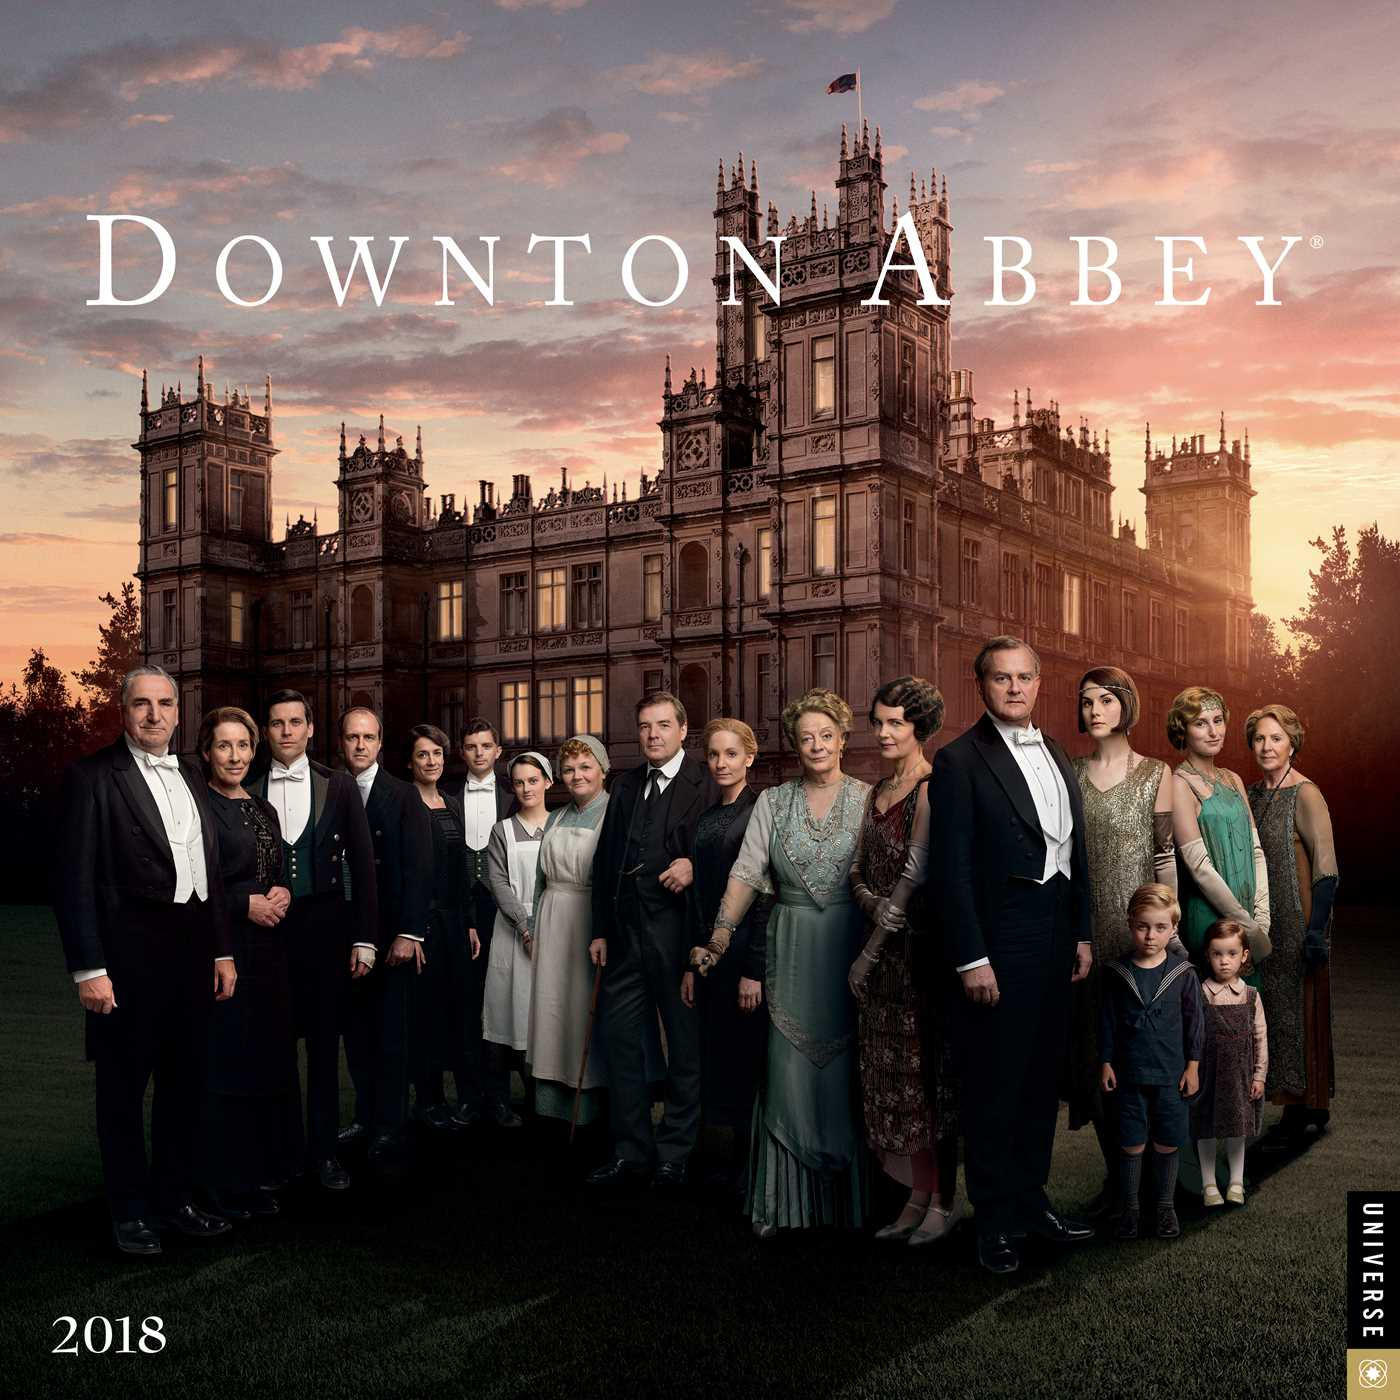 Downton Abbey 2018 Wall Calendar